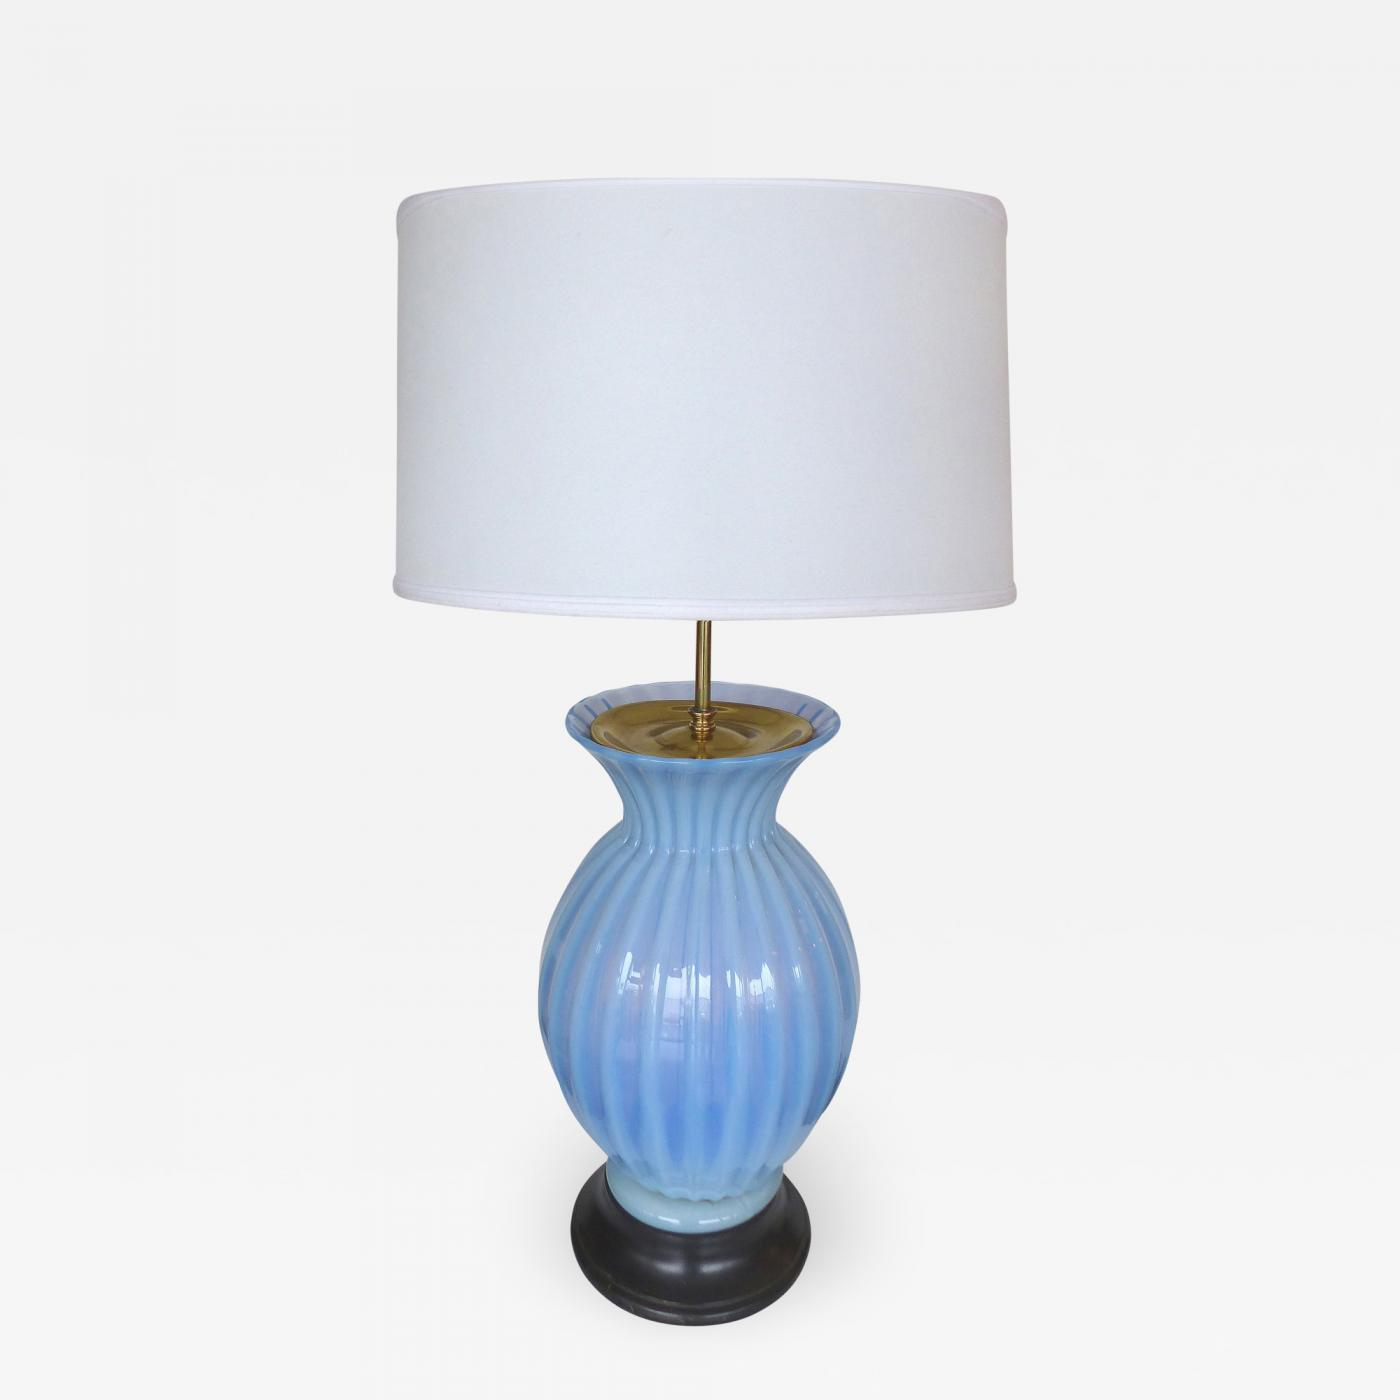 Image of: Marbro Lamp Company Mid Century Modern Blue Murano Glass Table Lamp By Marbro